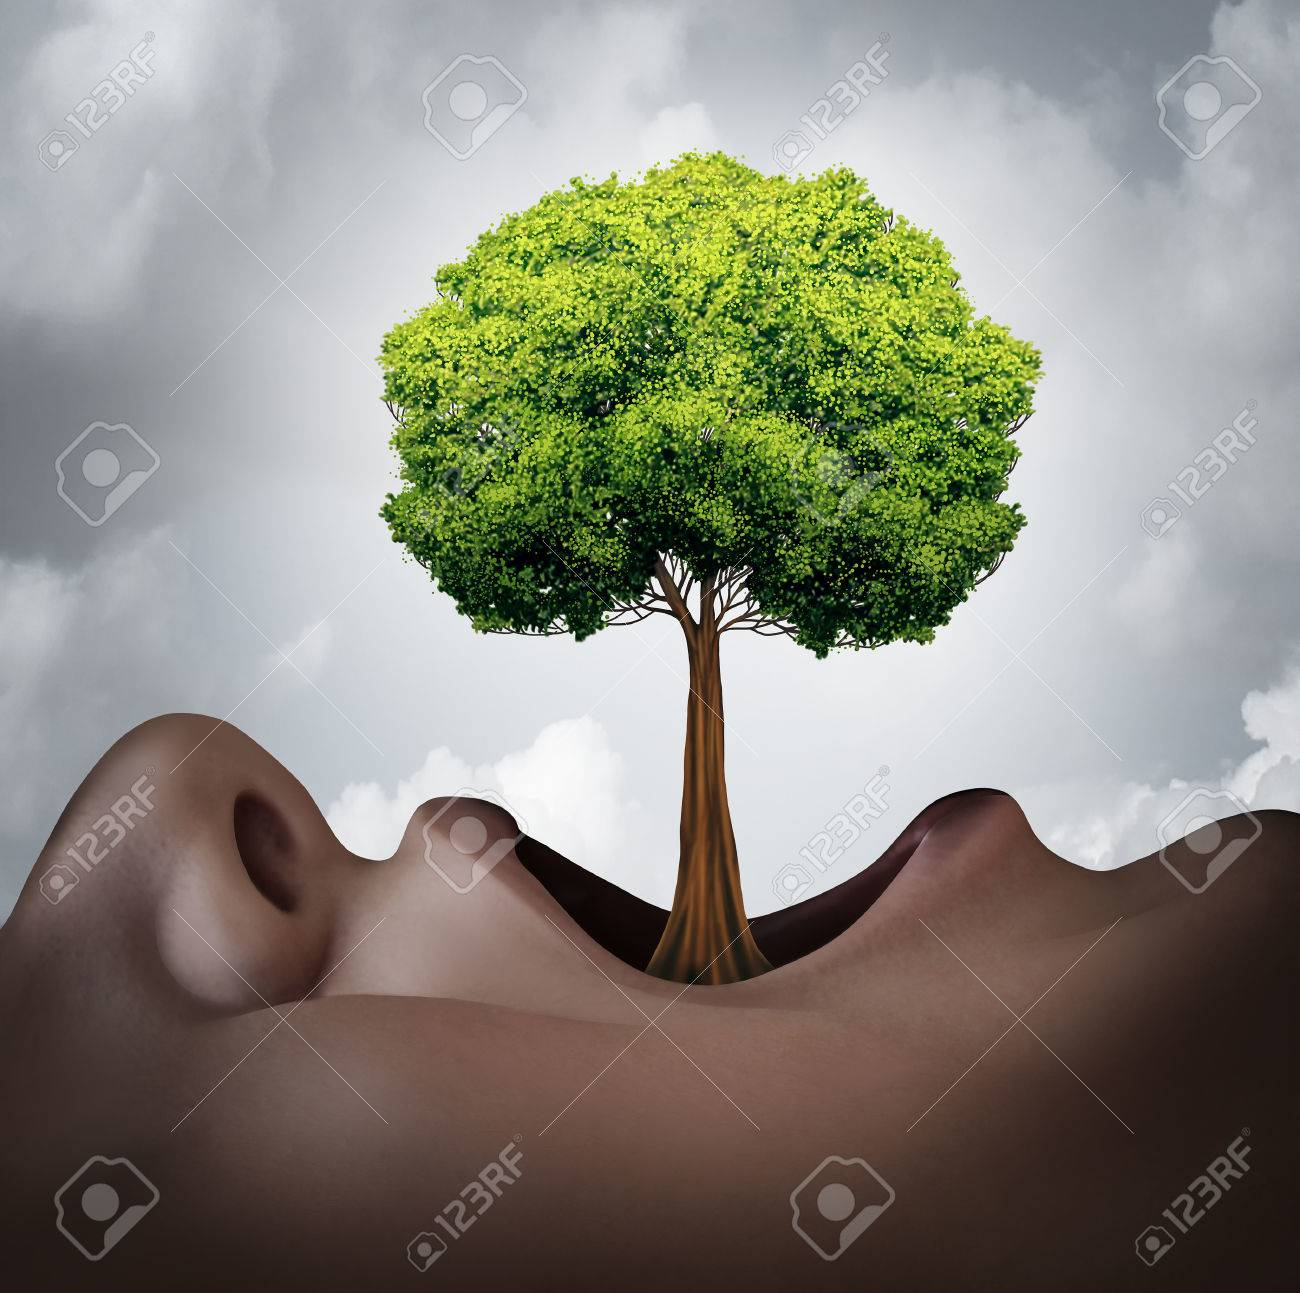 Growing your vocabulary concept and speech therapy symbol as a human open mouth with a tree growing as a tongue as a metaphor for language grammar and voice growth. - 52657745